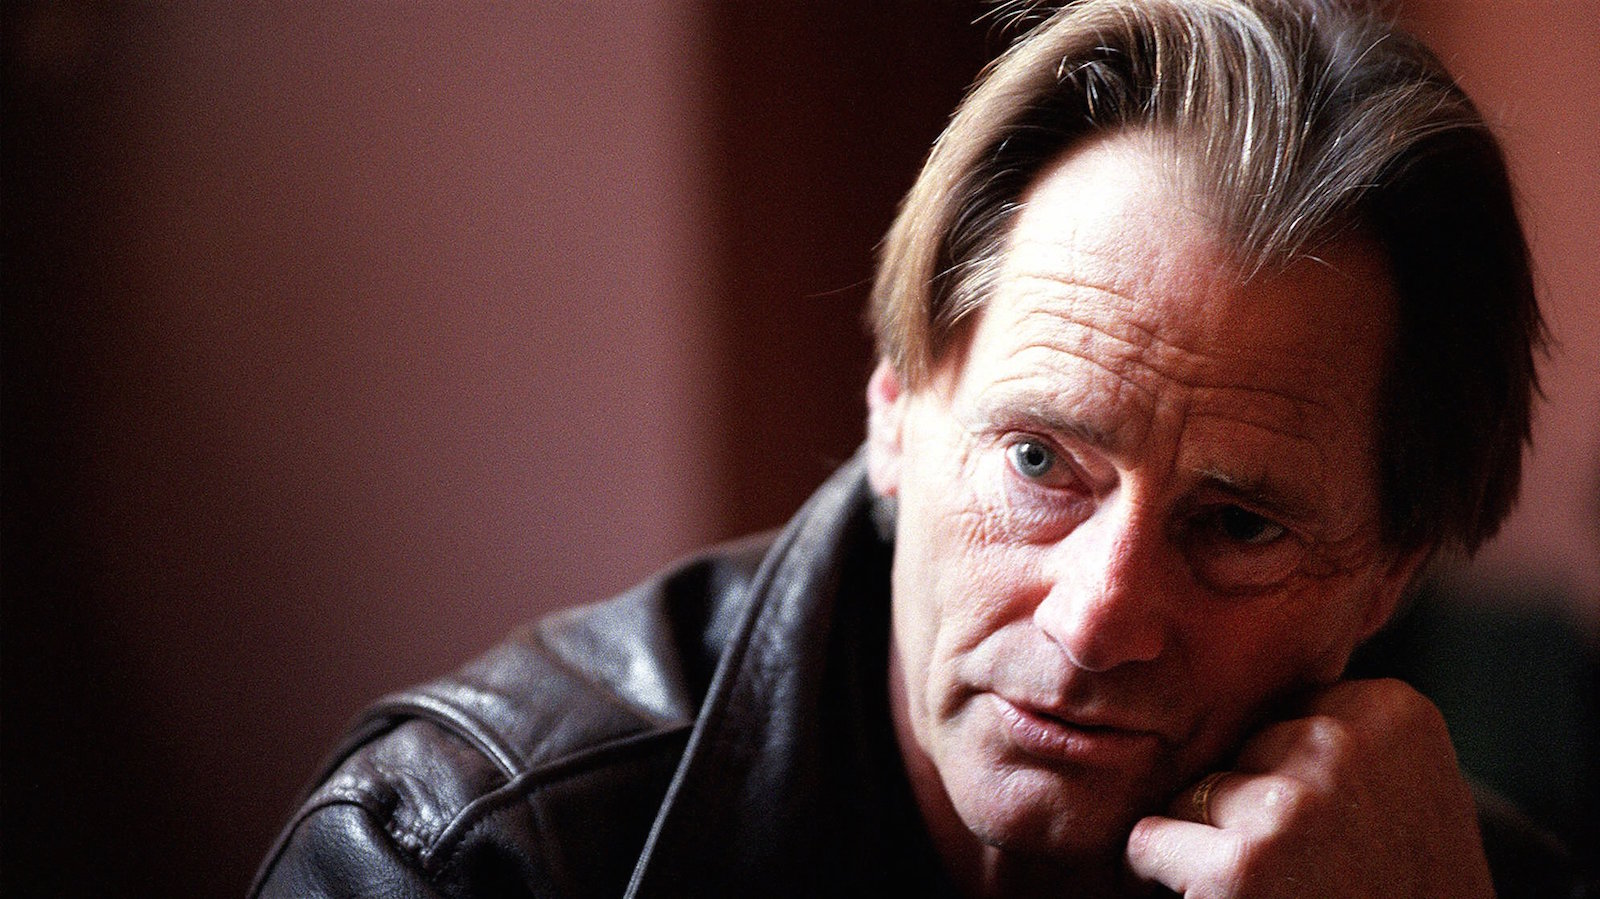 """Sam Shepard, playwright and director of """"The Late Henry Moss,"""" is photographed during an interview in San Francisco, Nov. 10, 2000. Shepard treads familiar ground in his latest three-act, three-hour production, scheduled to open Nov. 14, in which two estranged brothers confront their family's violent past after the death of their father. (AP Photo/Jakub Mosur)"""